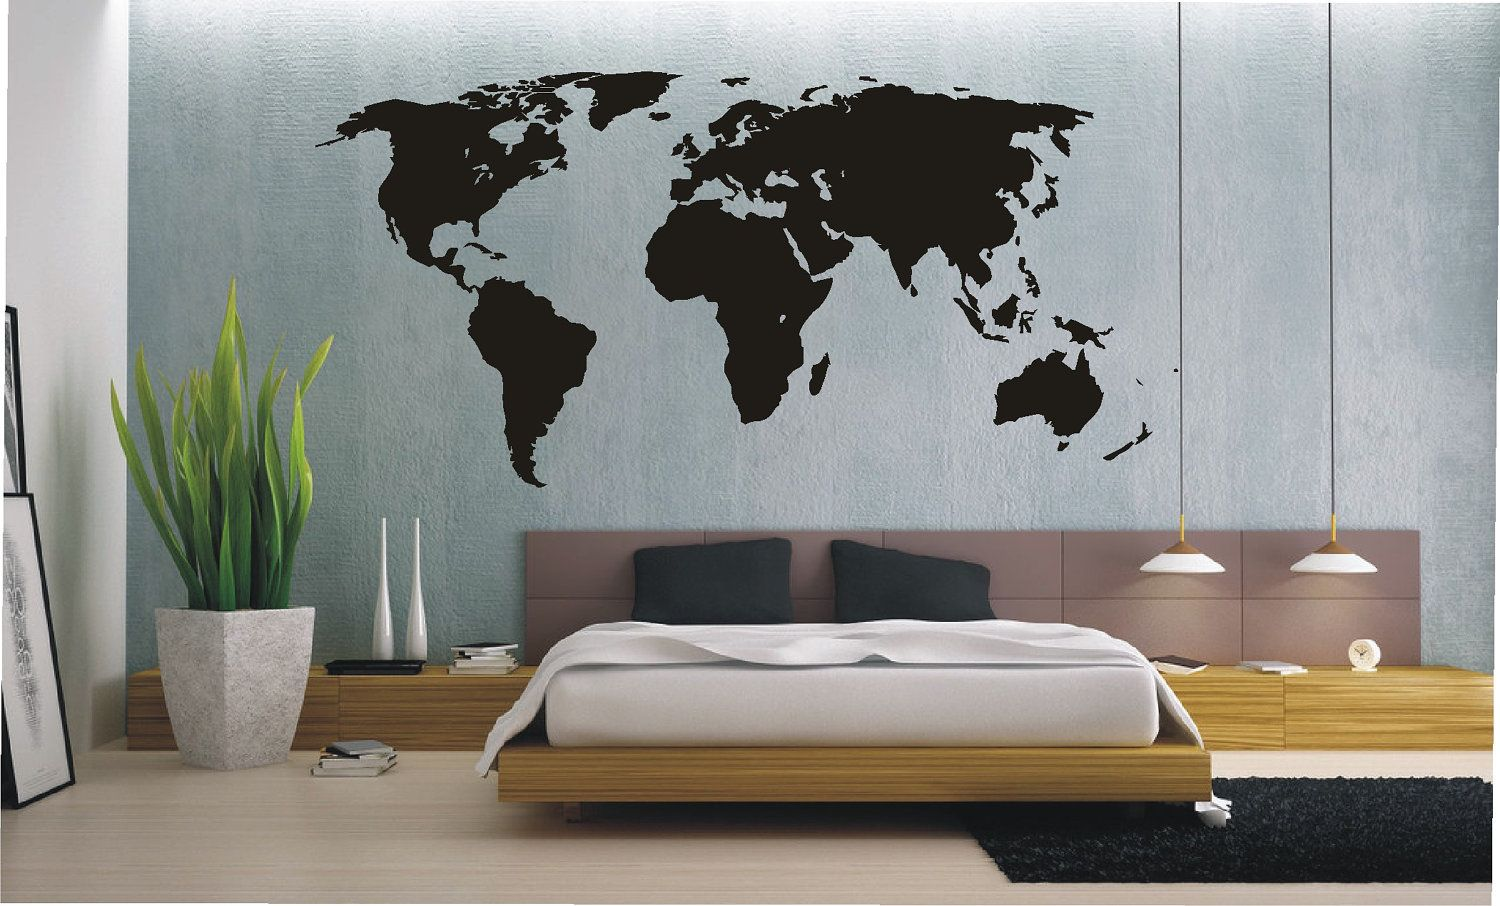 Astounding Wall Tattoo Beste Wahl Extra Large World Map Sticker, Vinyl Decal,